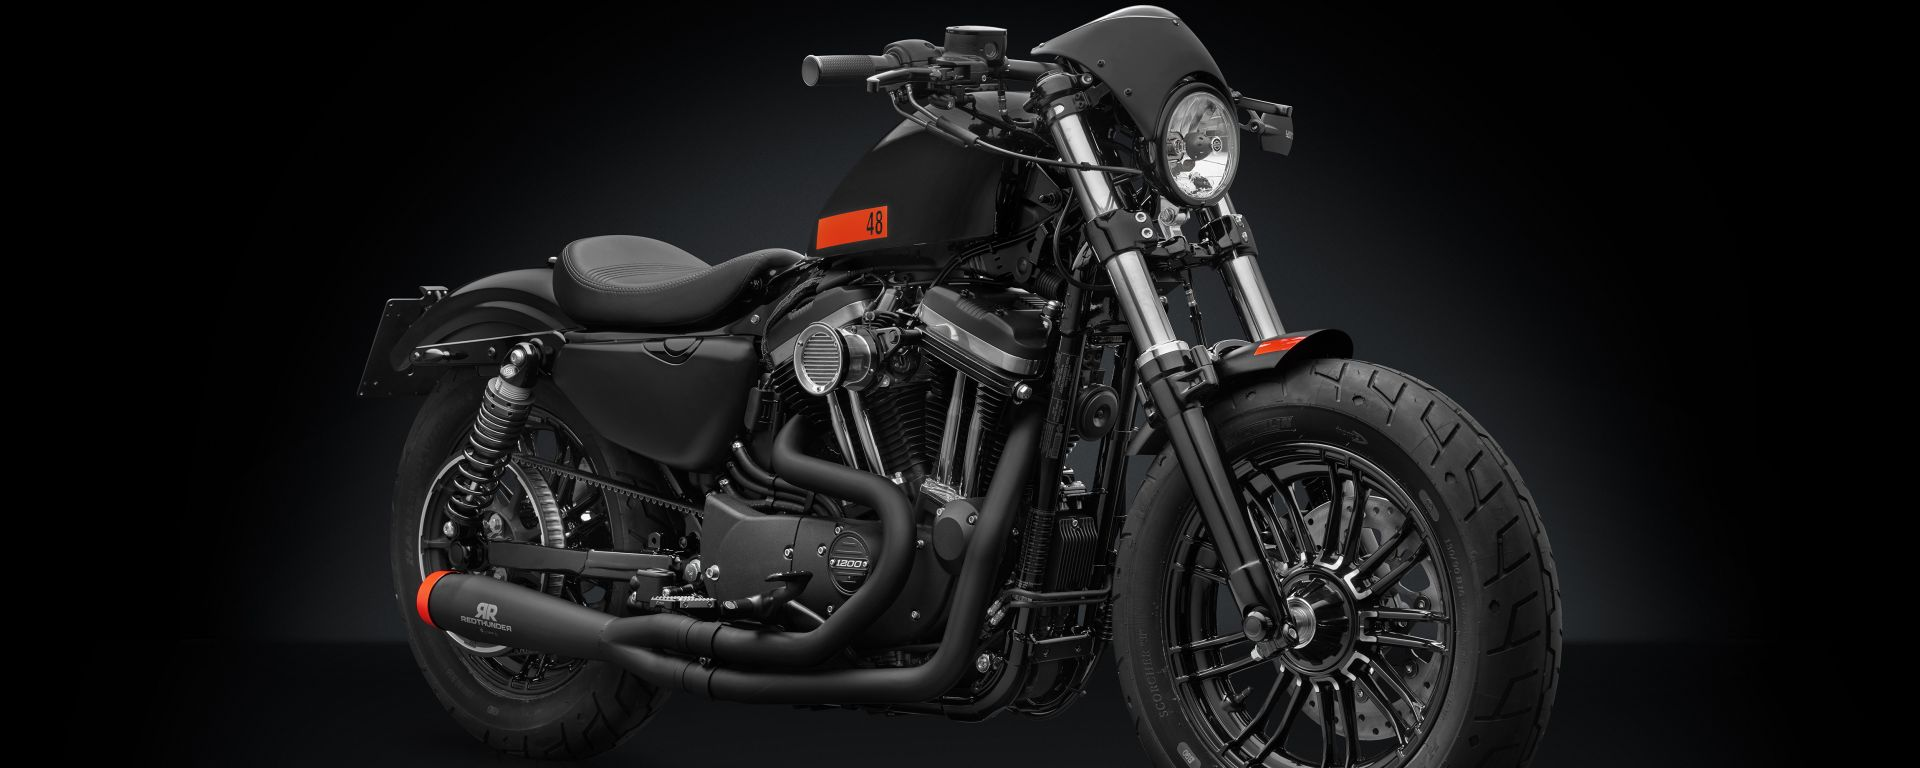 Harley-Davidson Sportster Forty Eight: la versione con Accessory Line Rizoma